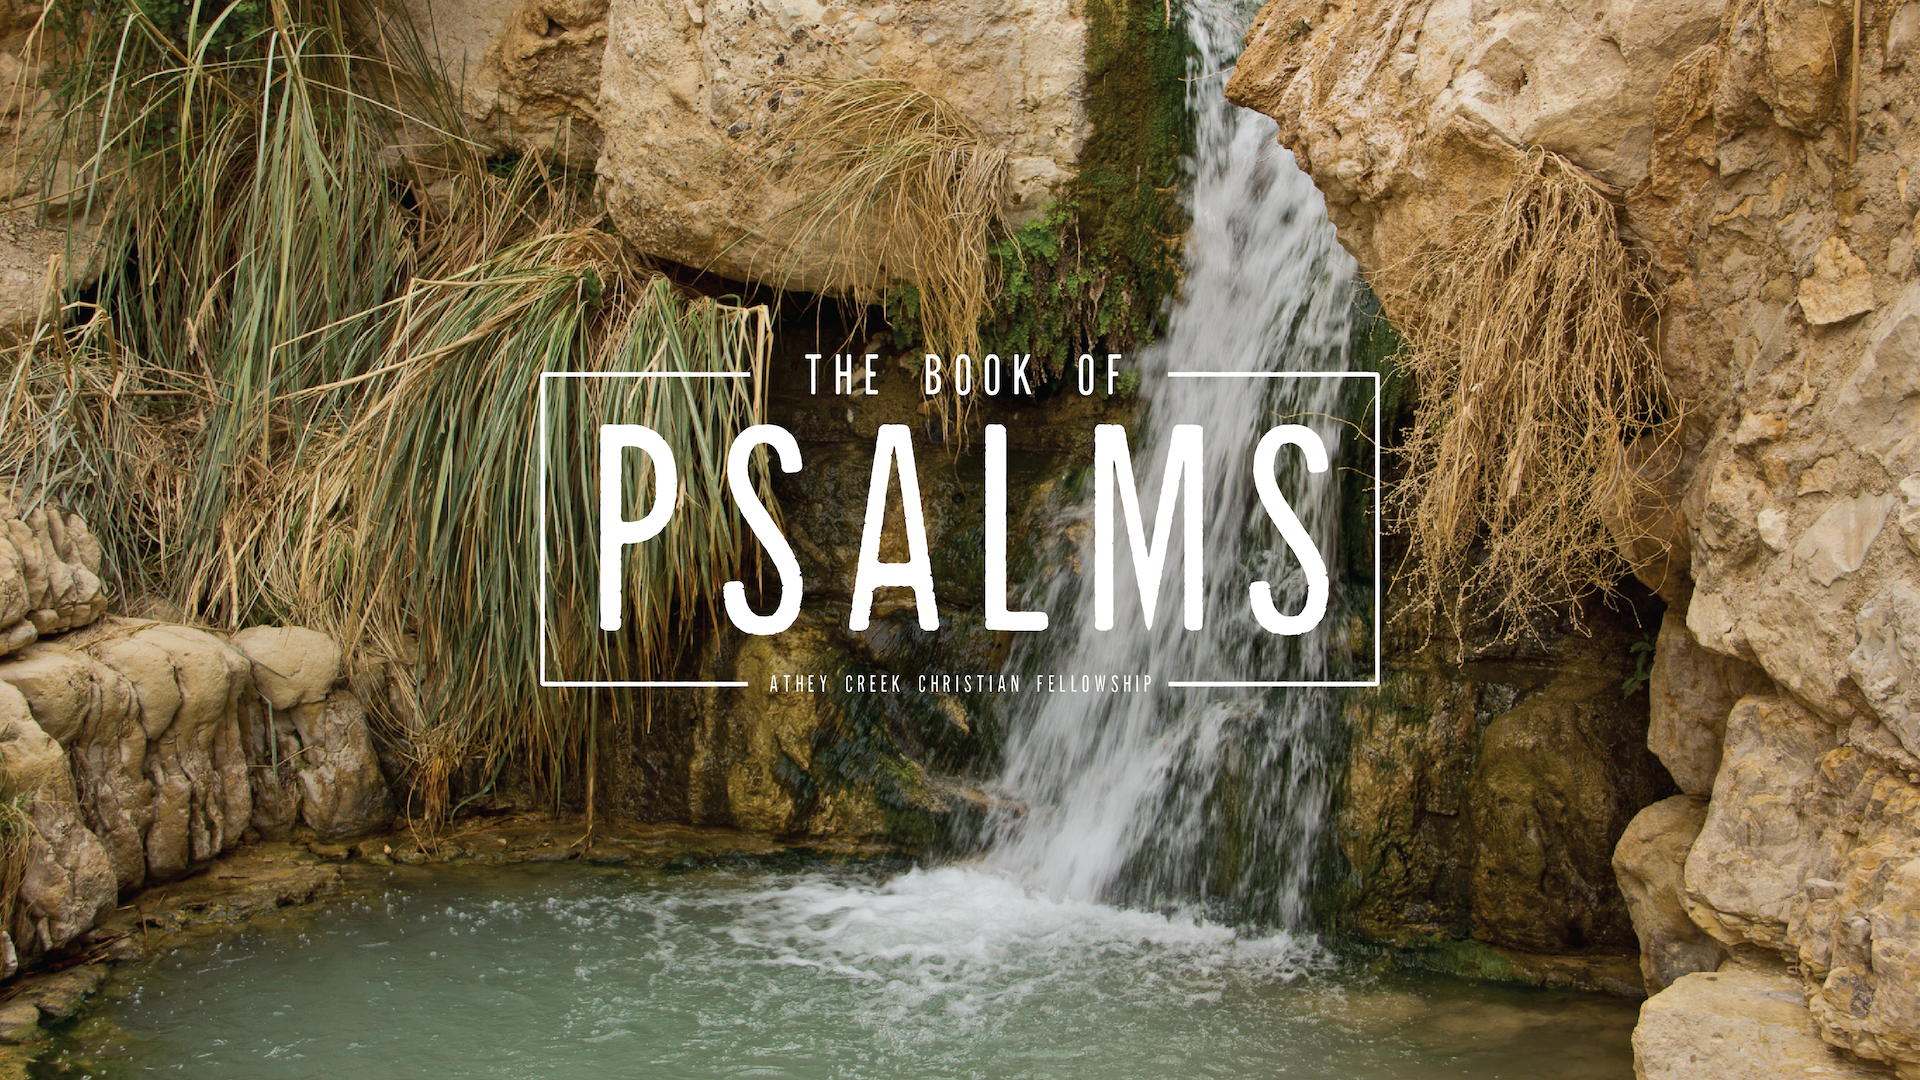 Poster forThrough the Bible (Psalms 24-26)